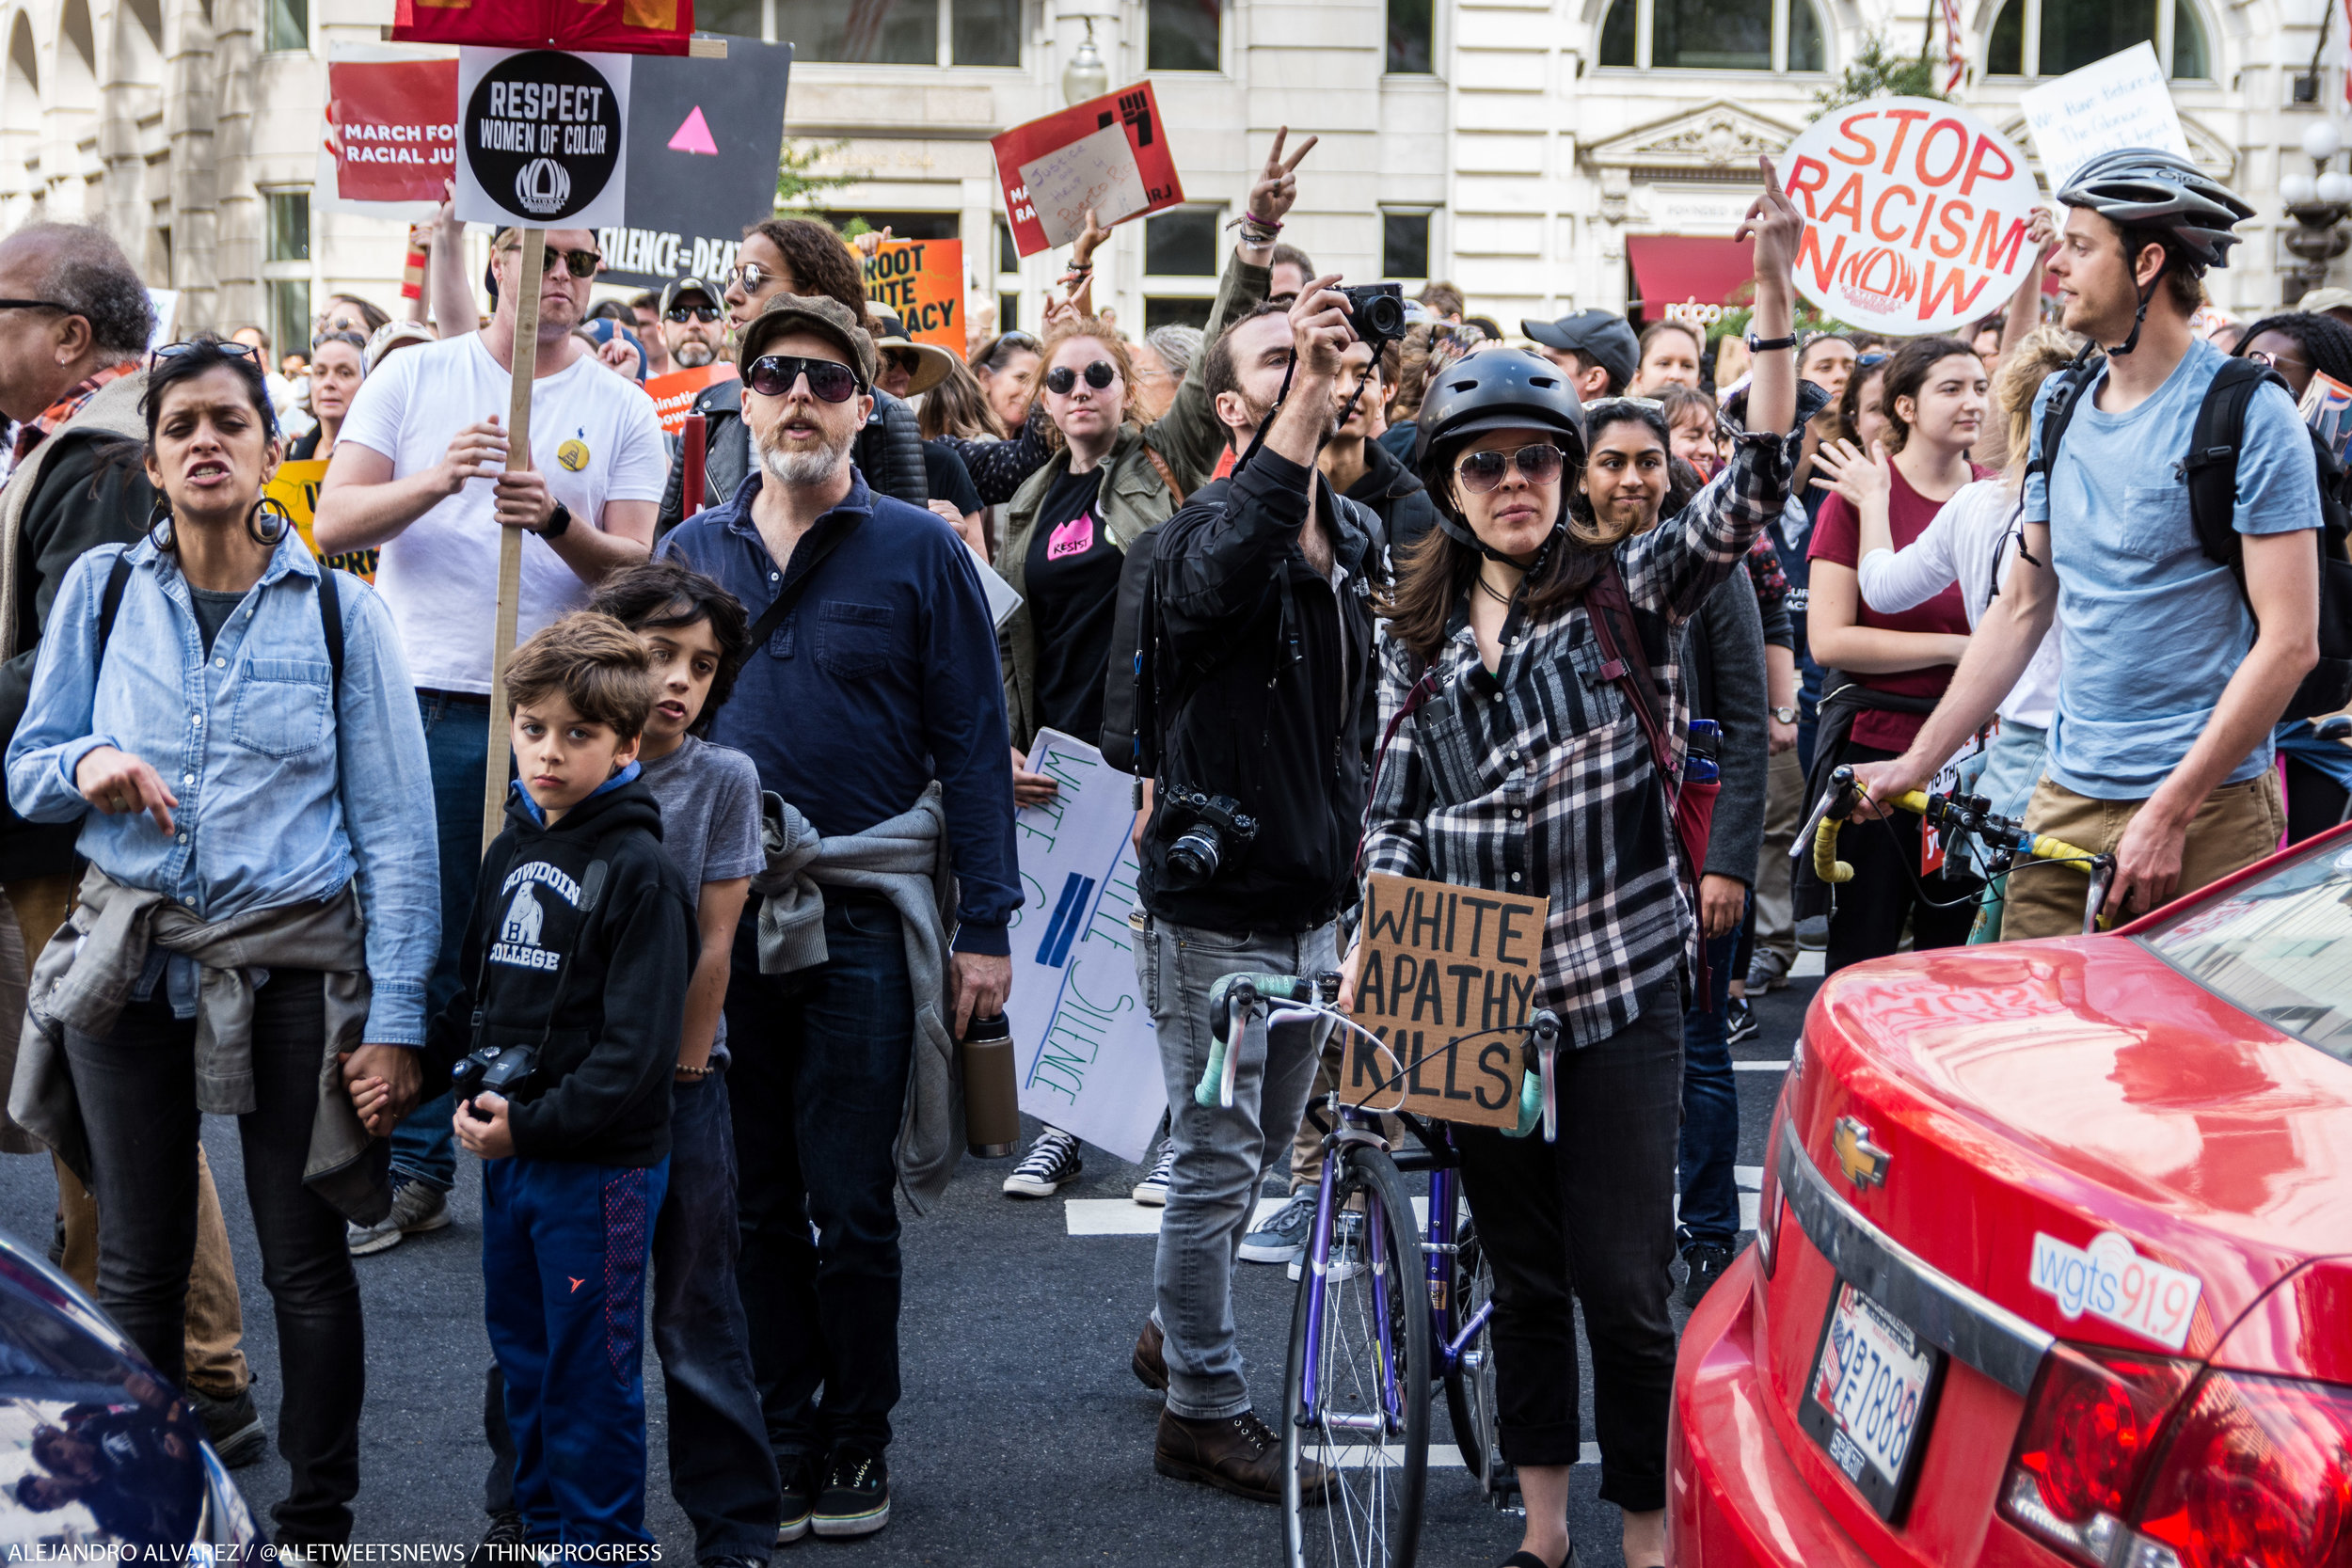 2017-9-30 March for Racial Justice-486.jpg